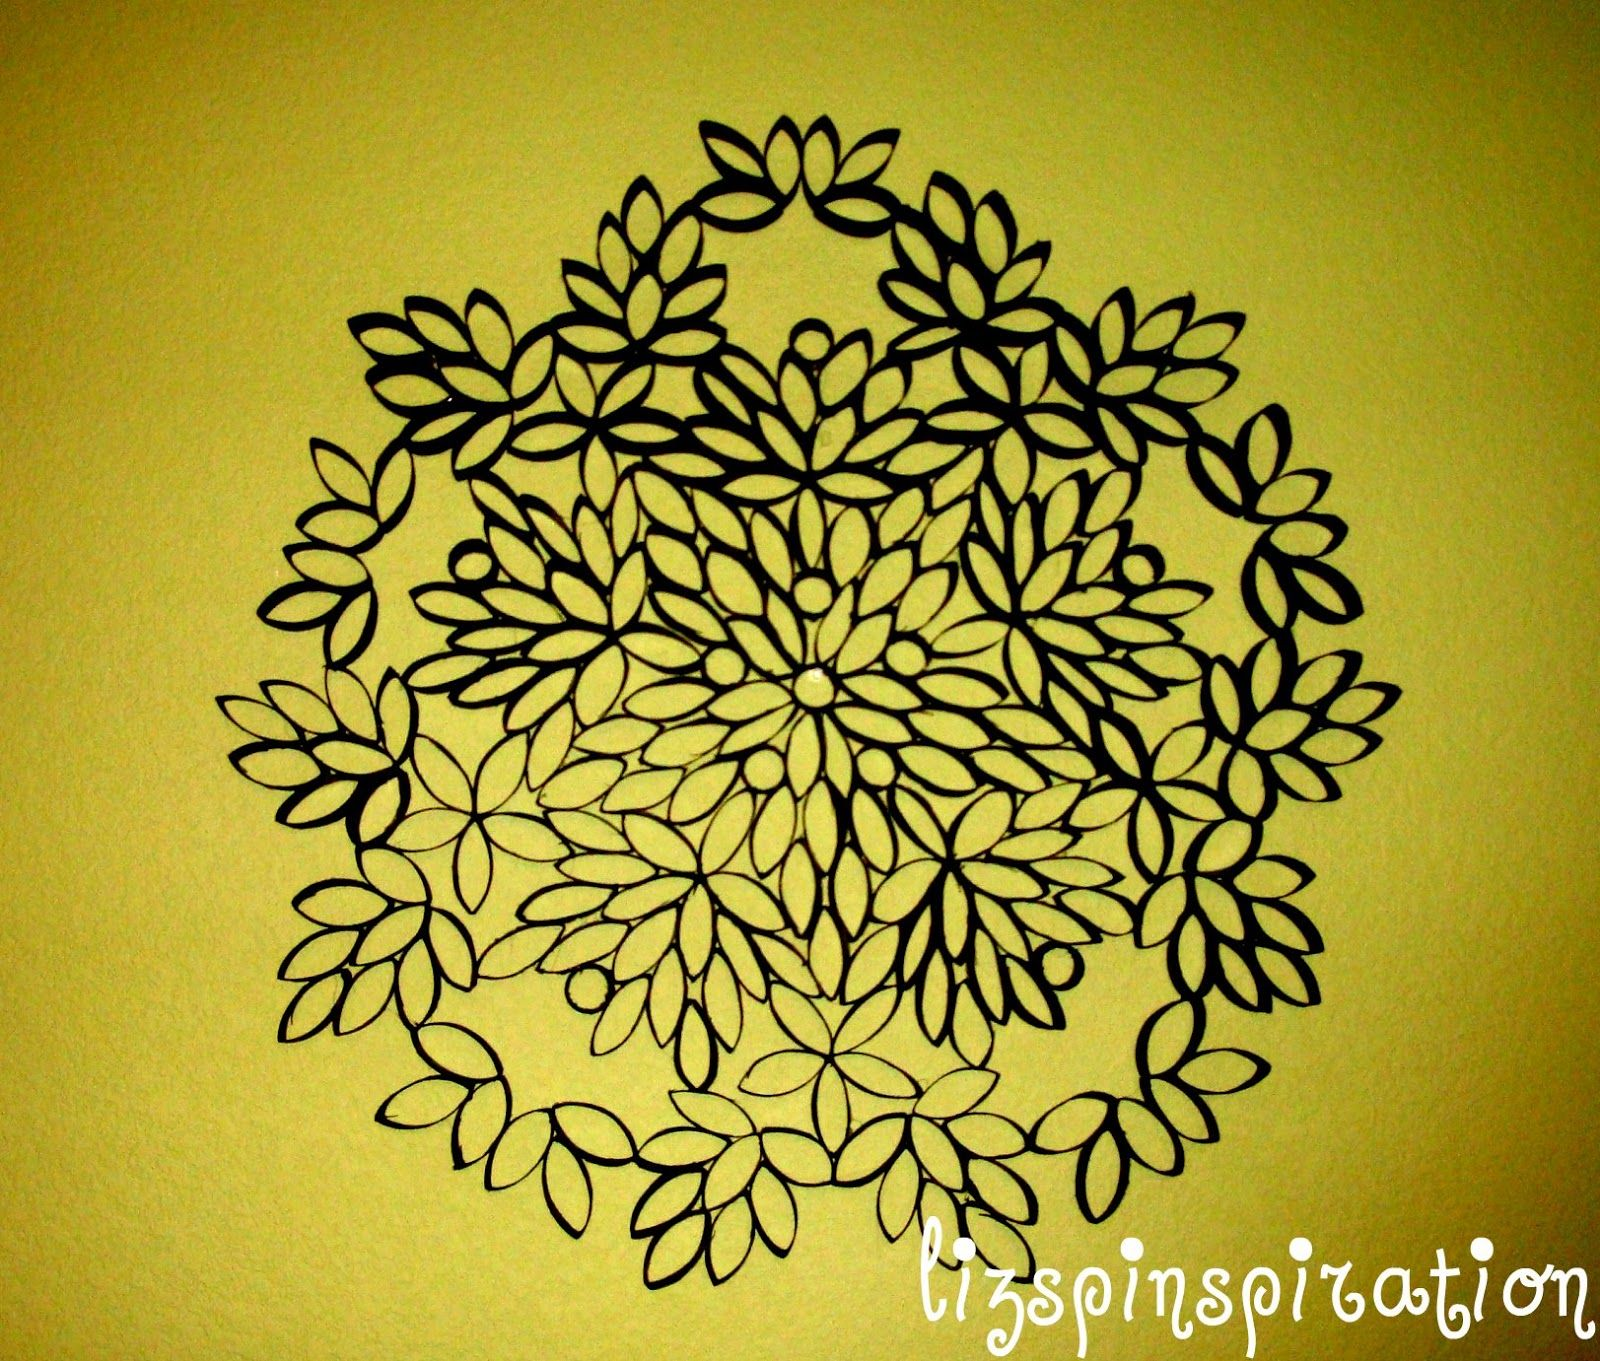 Wall art made from upcycled toilet paper rolls | pinned it & did it ...